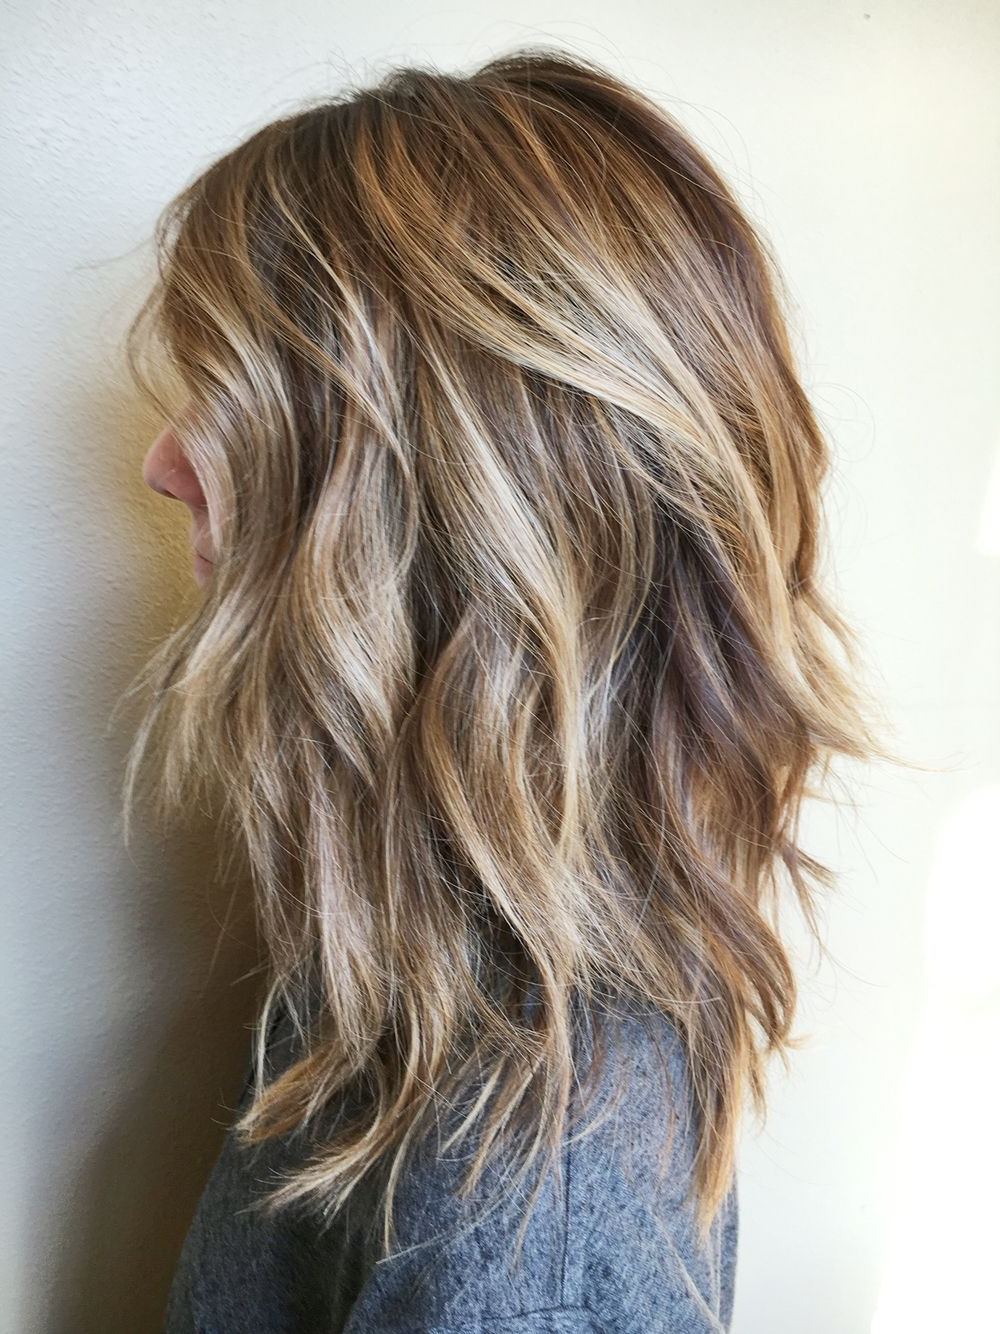 40 Amazing Medium Length Hairstyles & Shoulder Length Haircuts With Long Hair Short Layers Hairstyles (View 6 of 25)